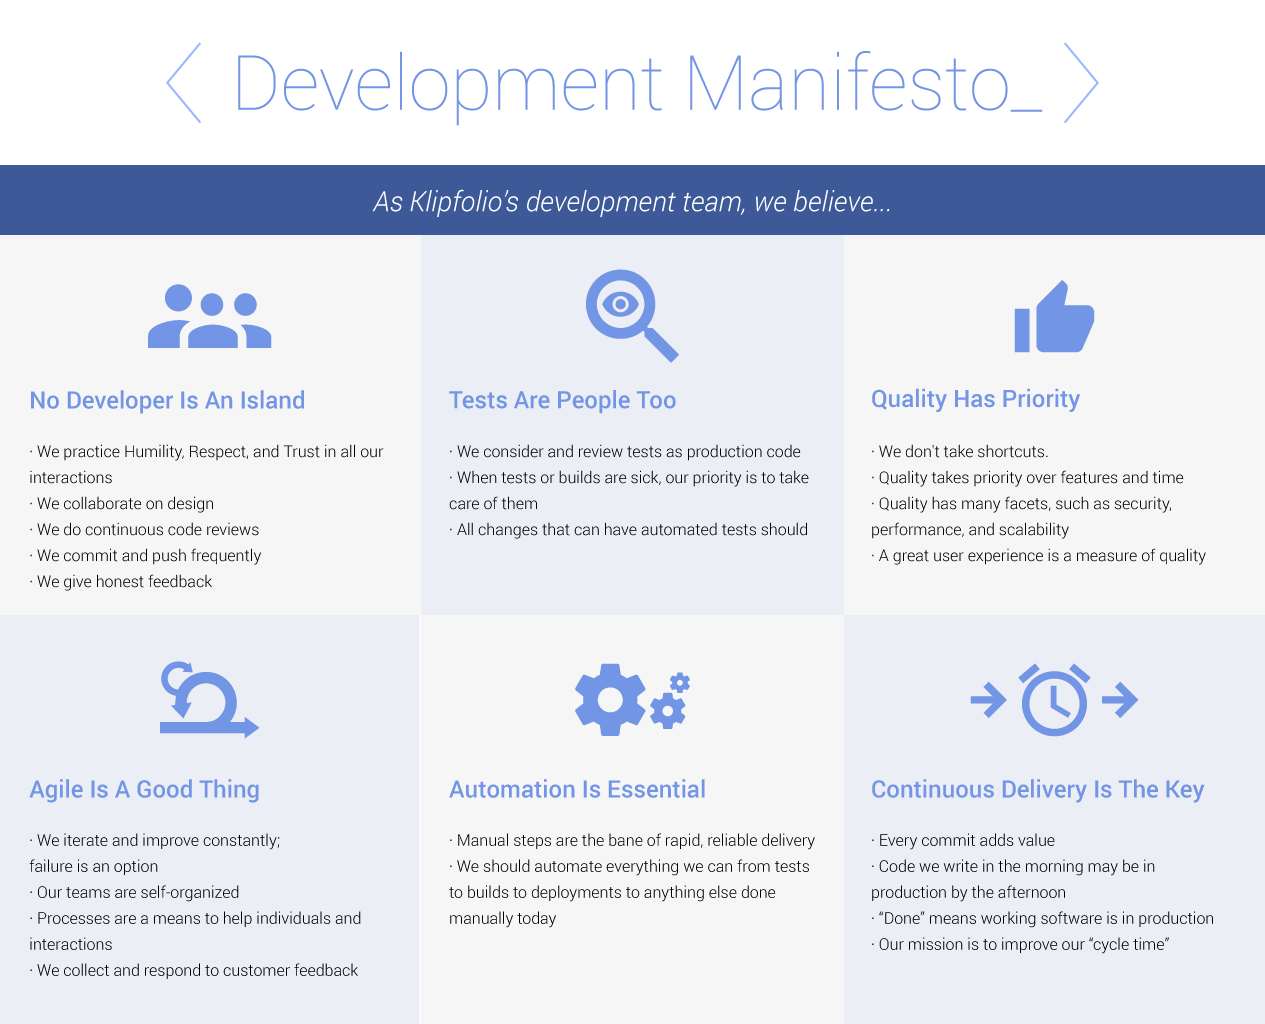 Development Manifesto - Original